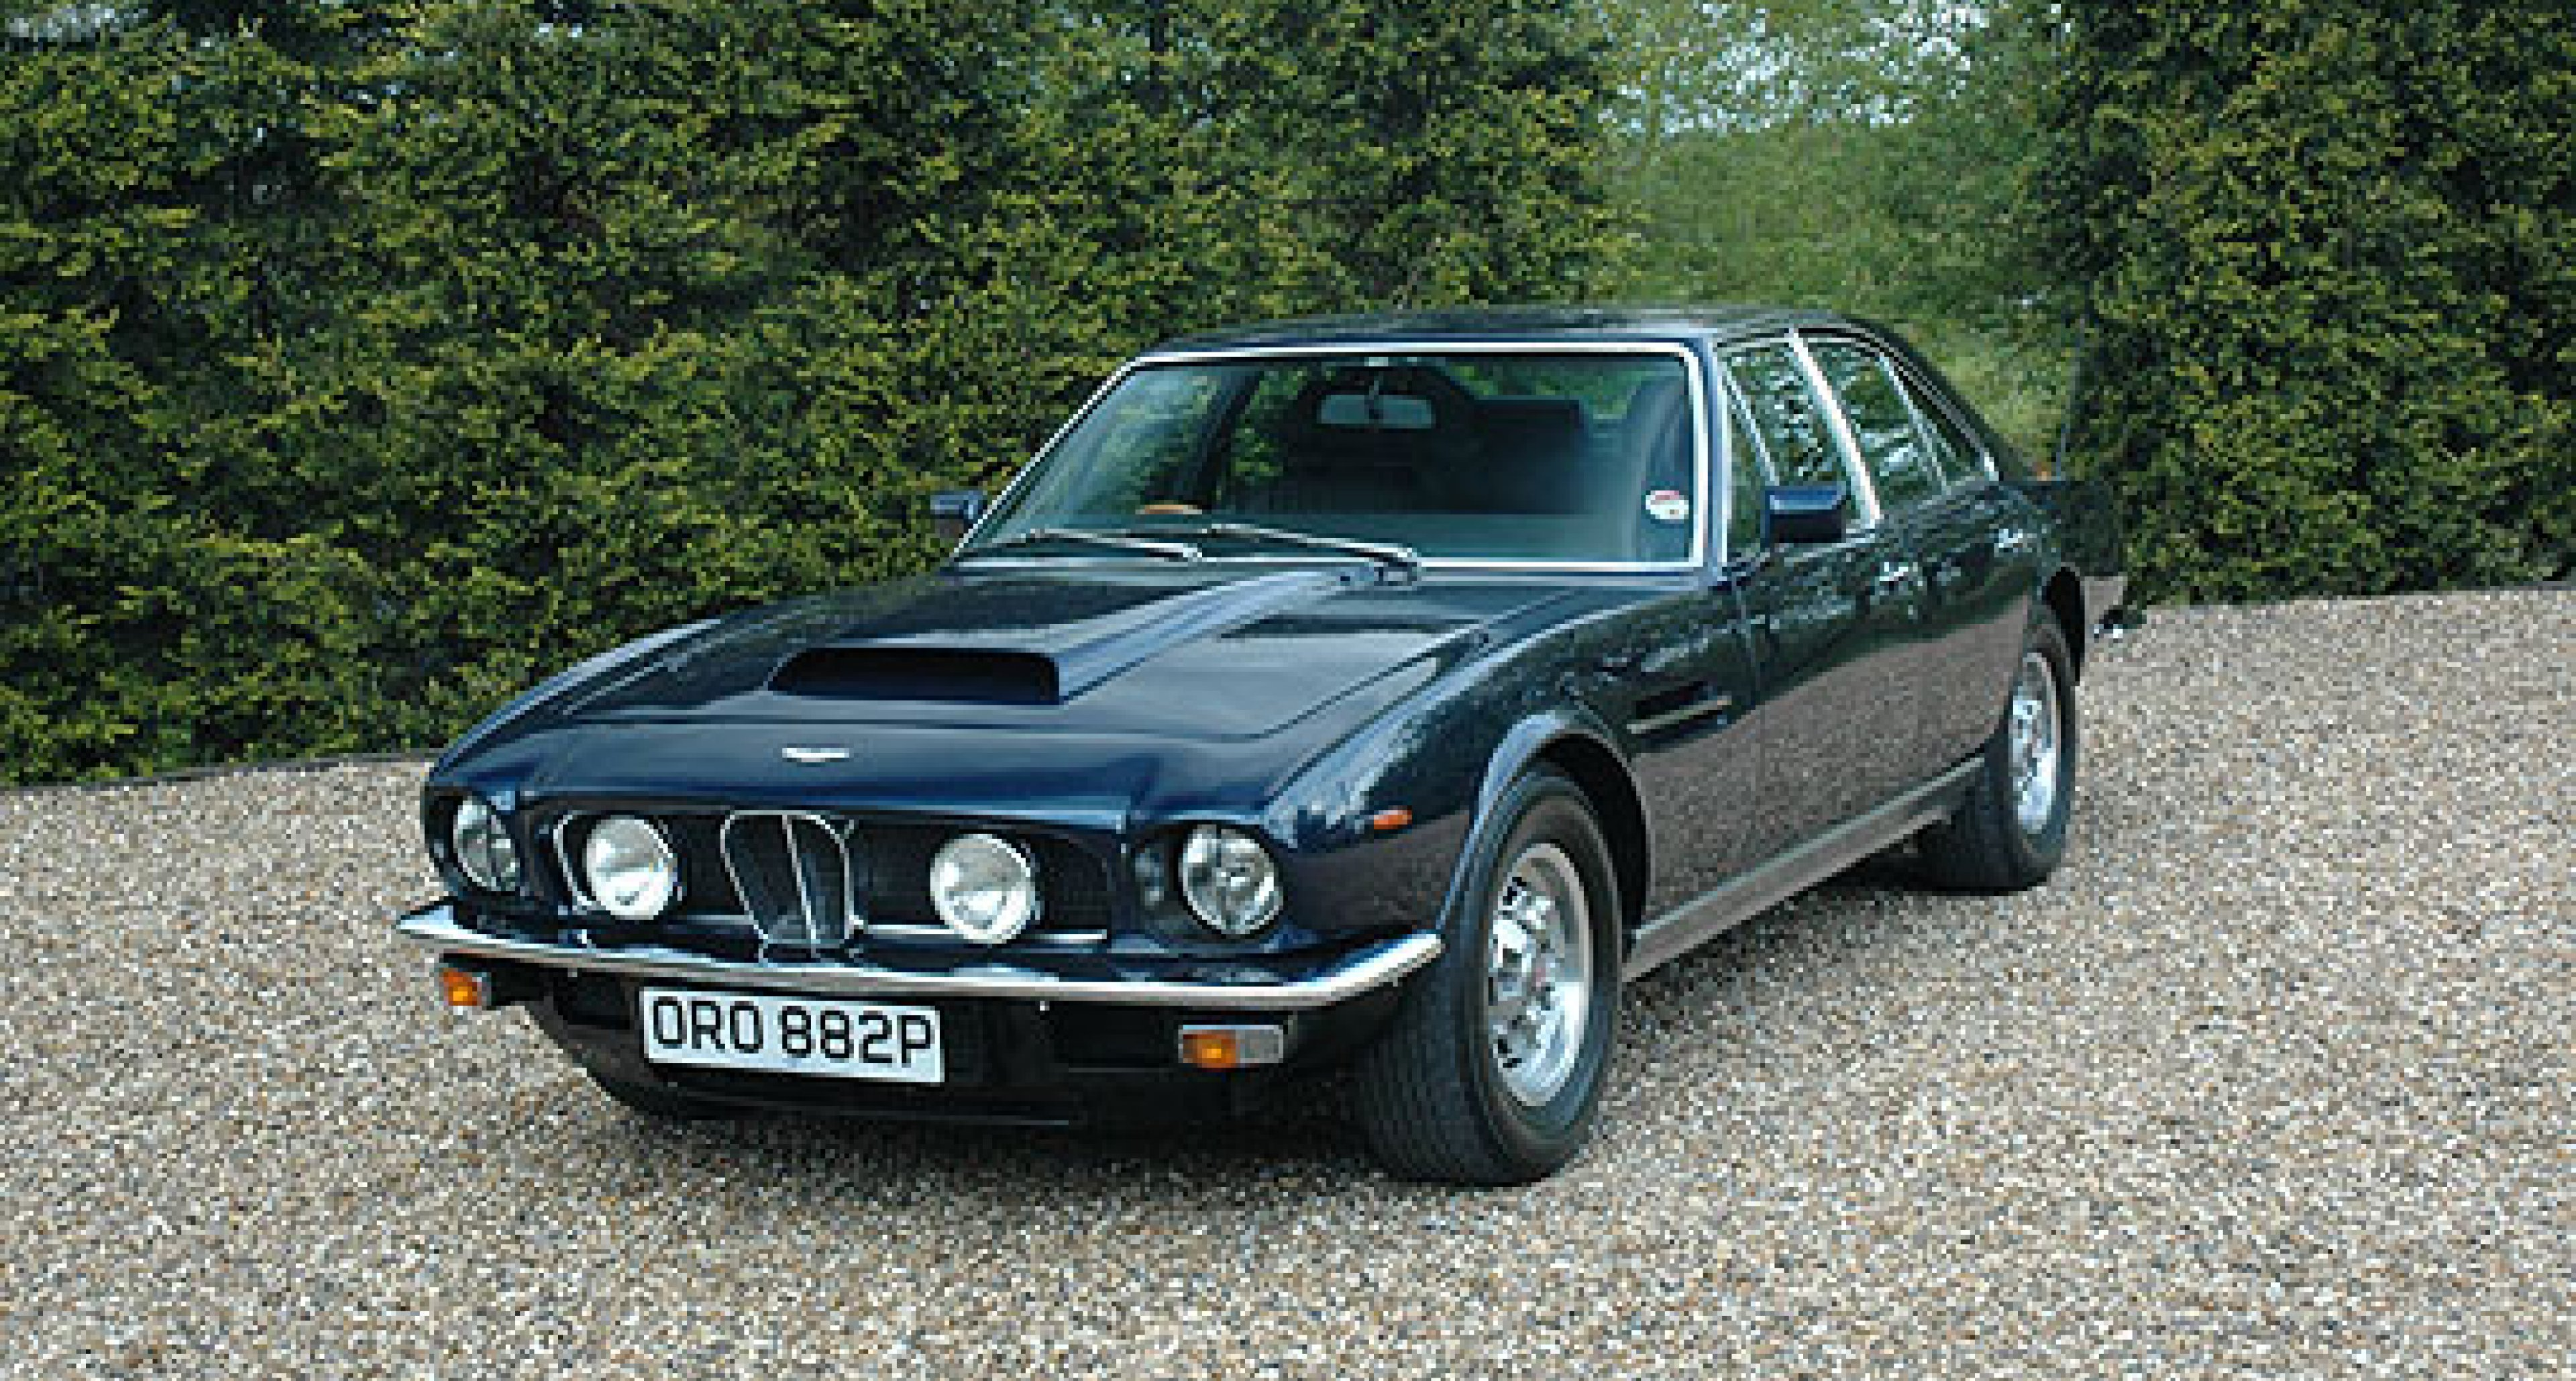 Bonhams Aston Martin Sale at Newport Pagnell -  17th May 2008 - Preview